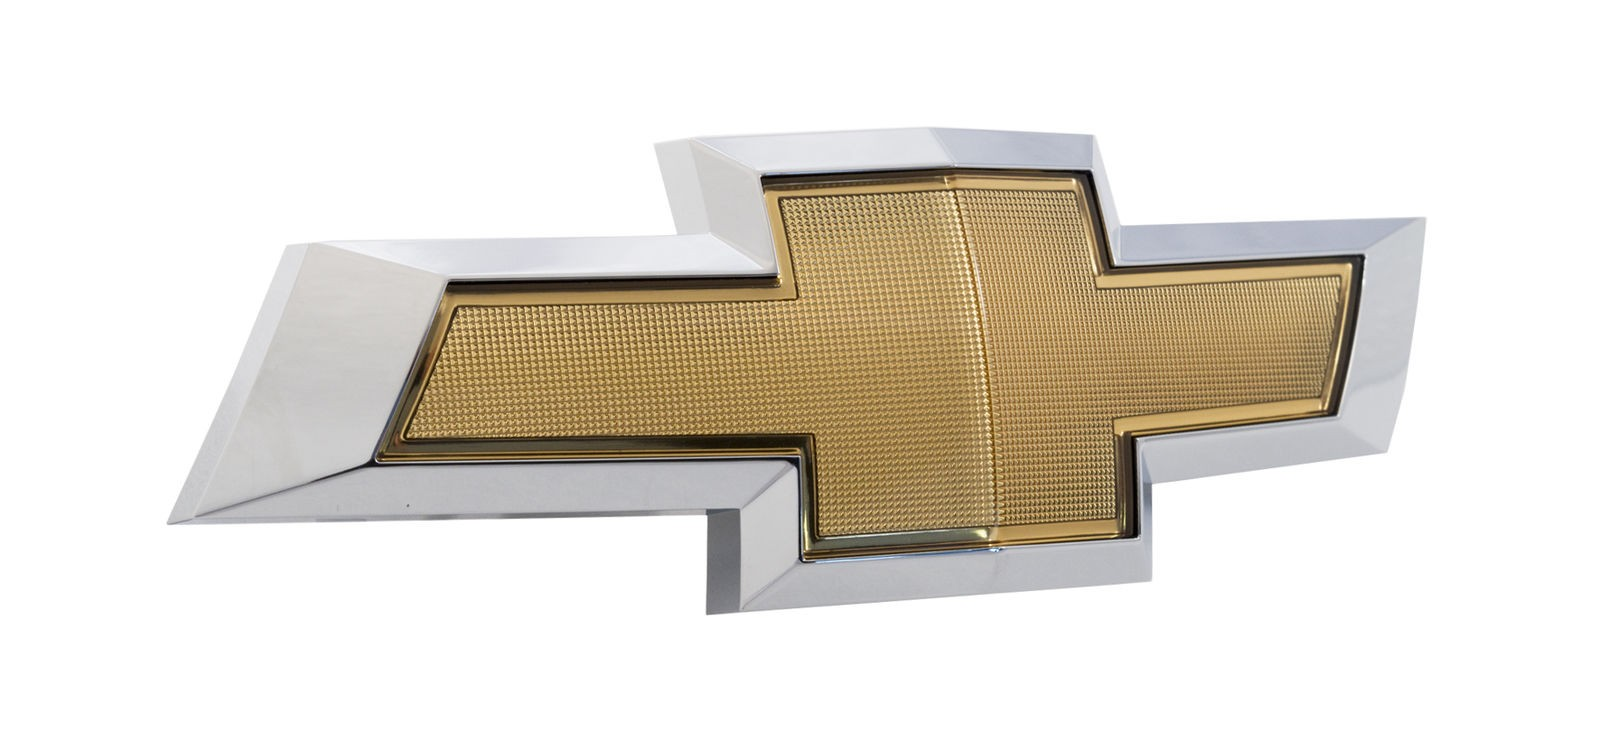 2014-2015 Camaro Front Grille Chevy Bowtie Emblem in Gold & Chrome